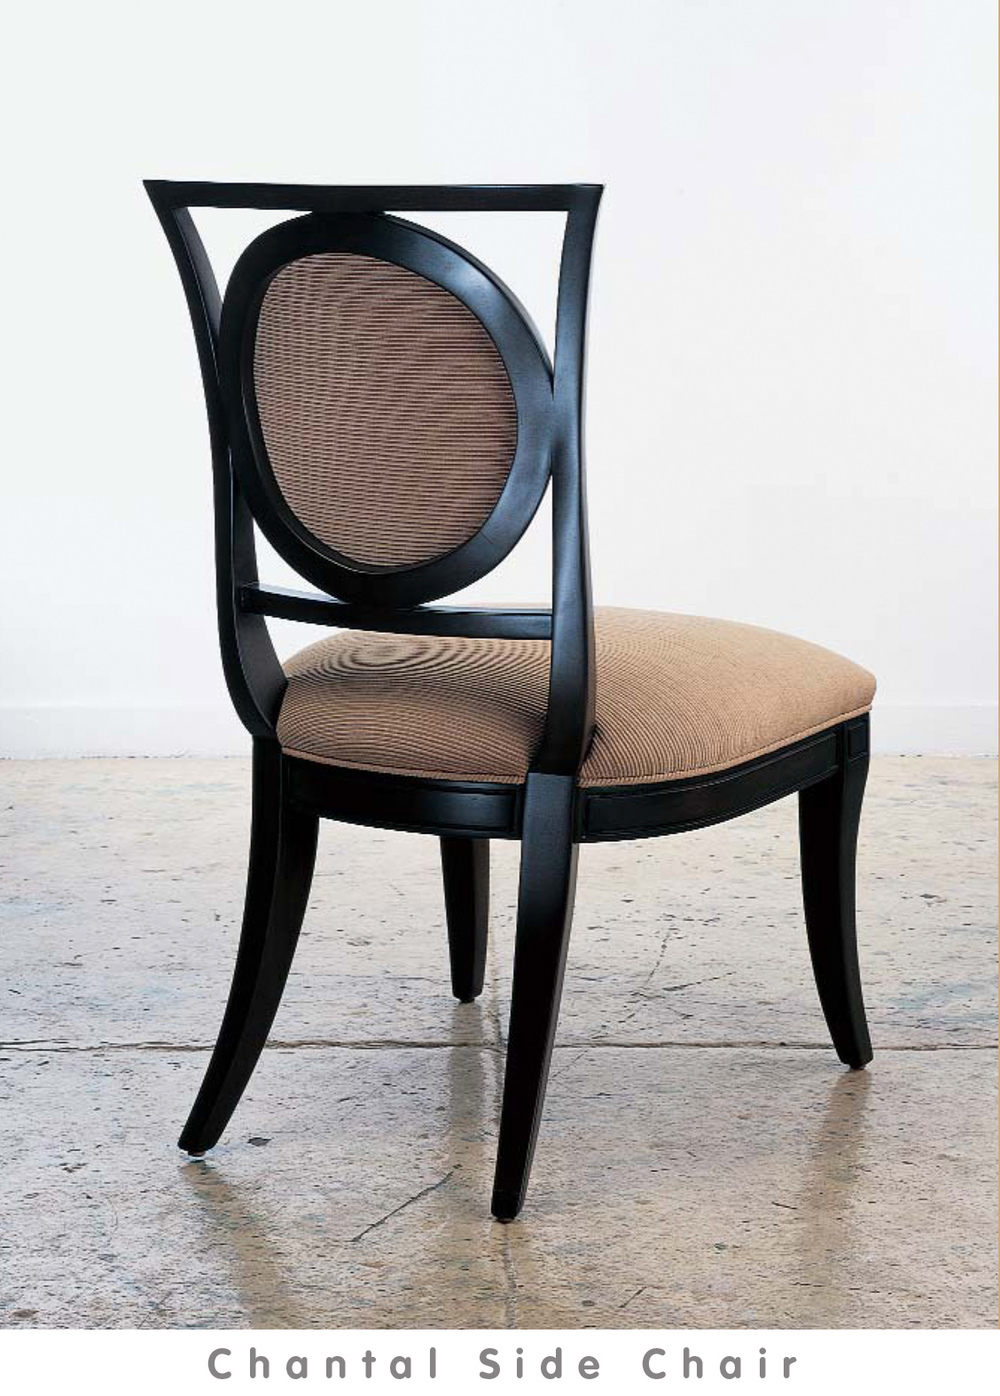 Chantal Side Chair